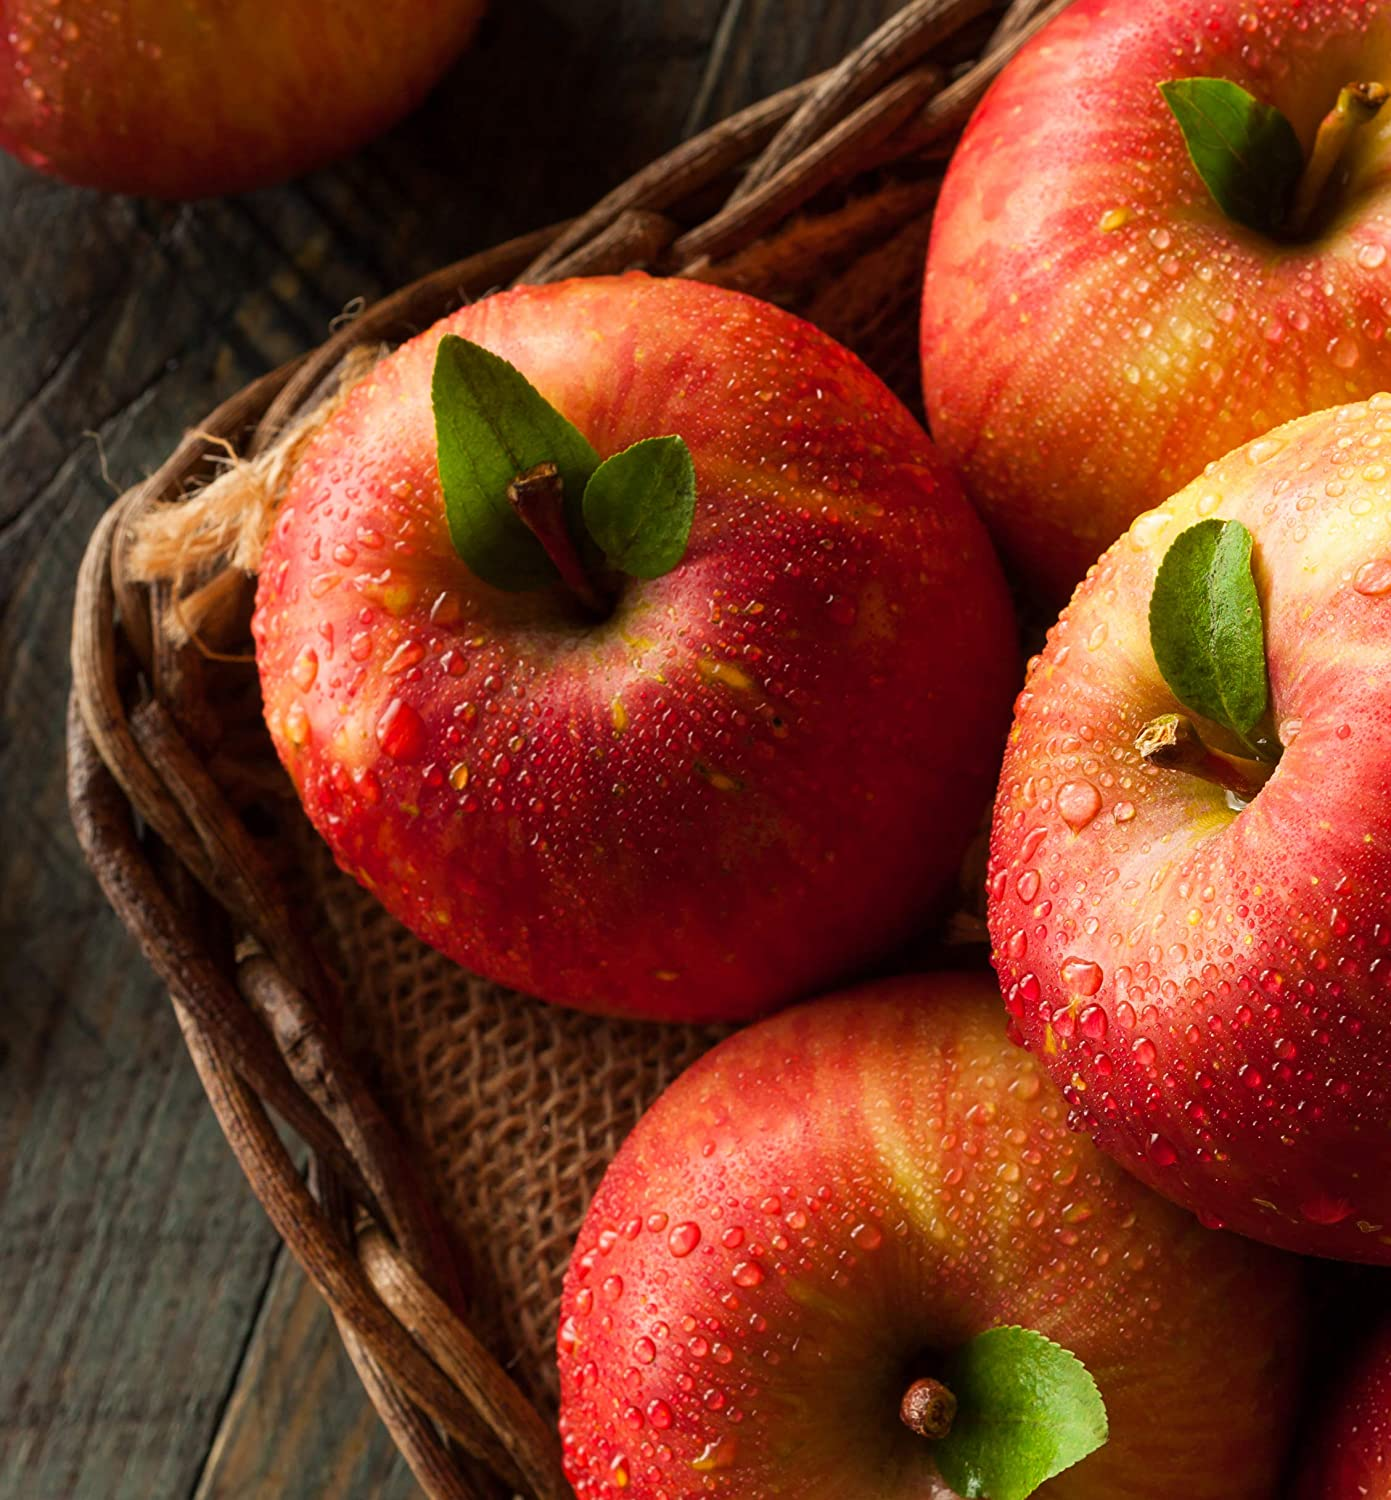 The Fruit Company Fuji Apples (Deluxe- 15 pc)- 15 premium fresh Fuji apples hand-packed and shipped directly from our Hood River, Oregon headquarters